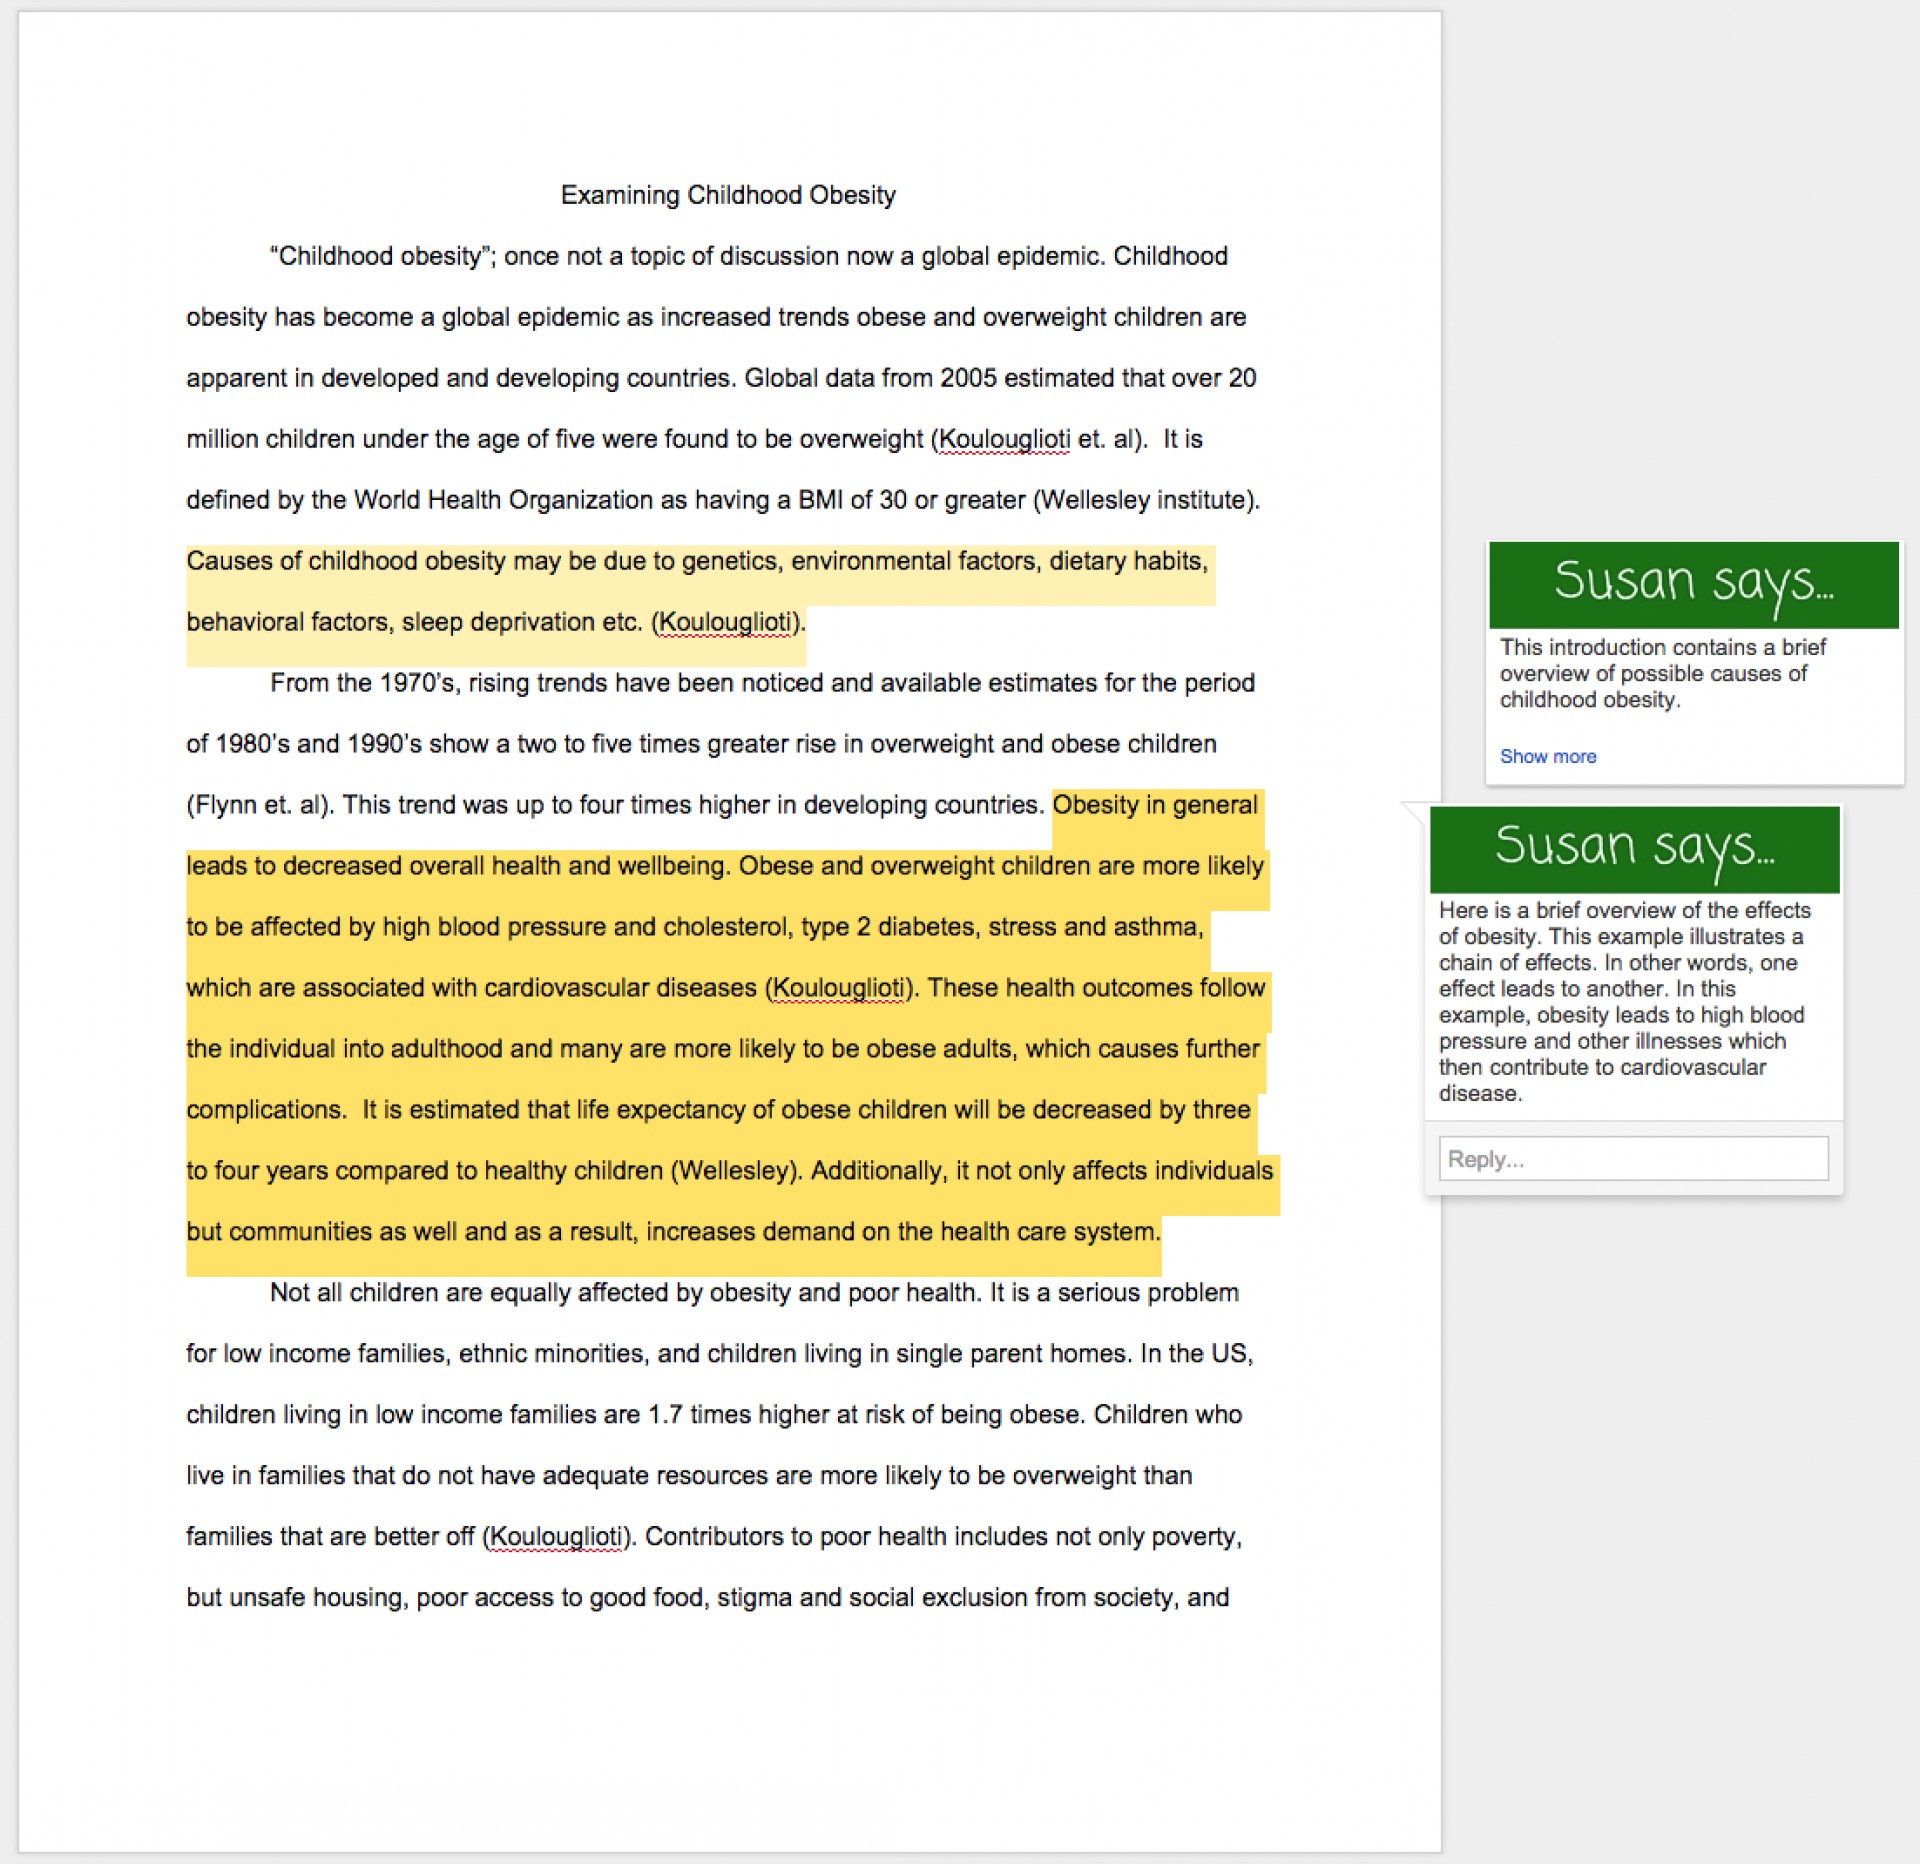 002 Essay Example Cause And Effect Examples That Will Stir Essays L How To Awful Start A Write Step By Powerpoint Pdf 1920